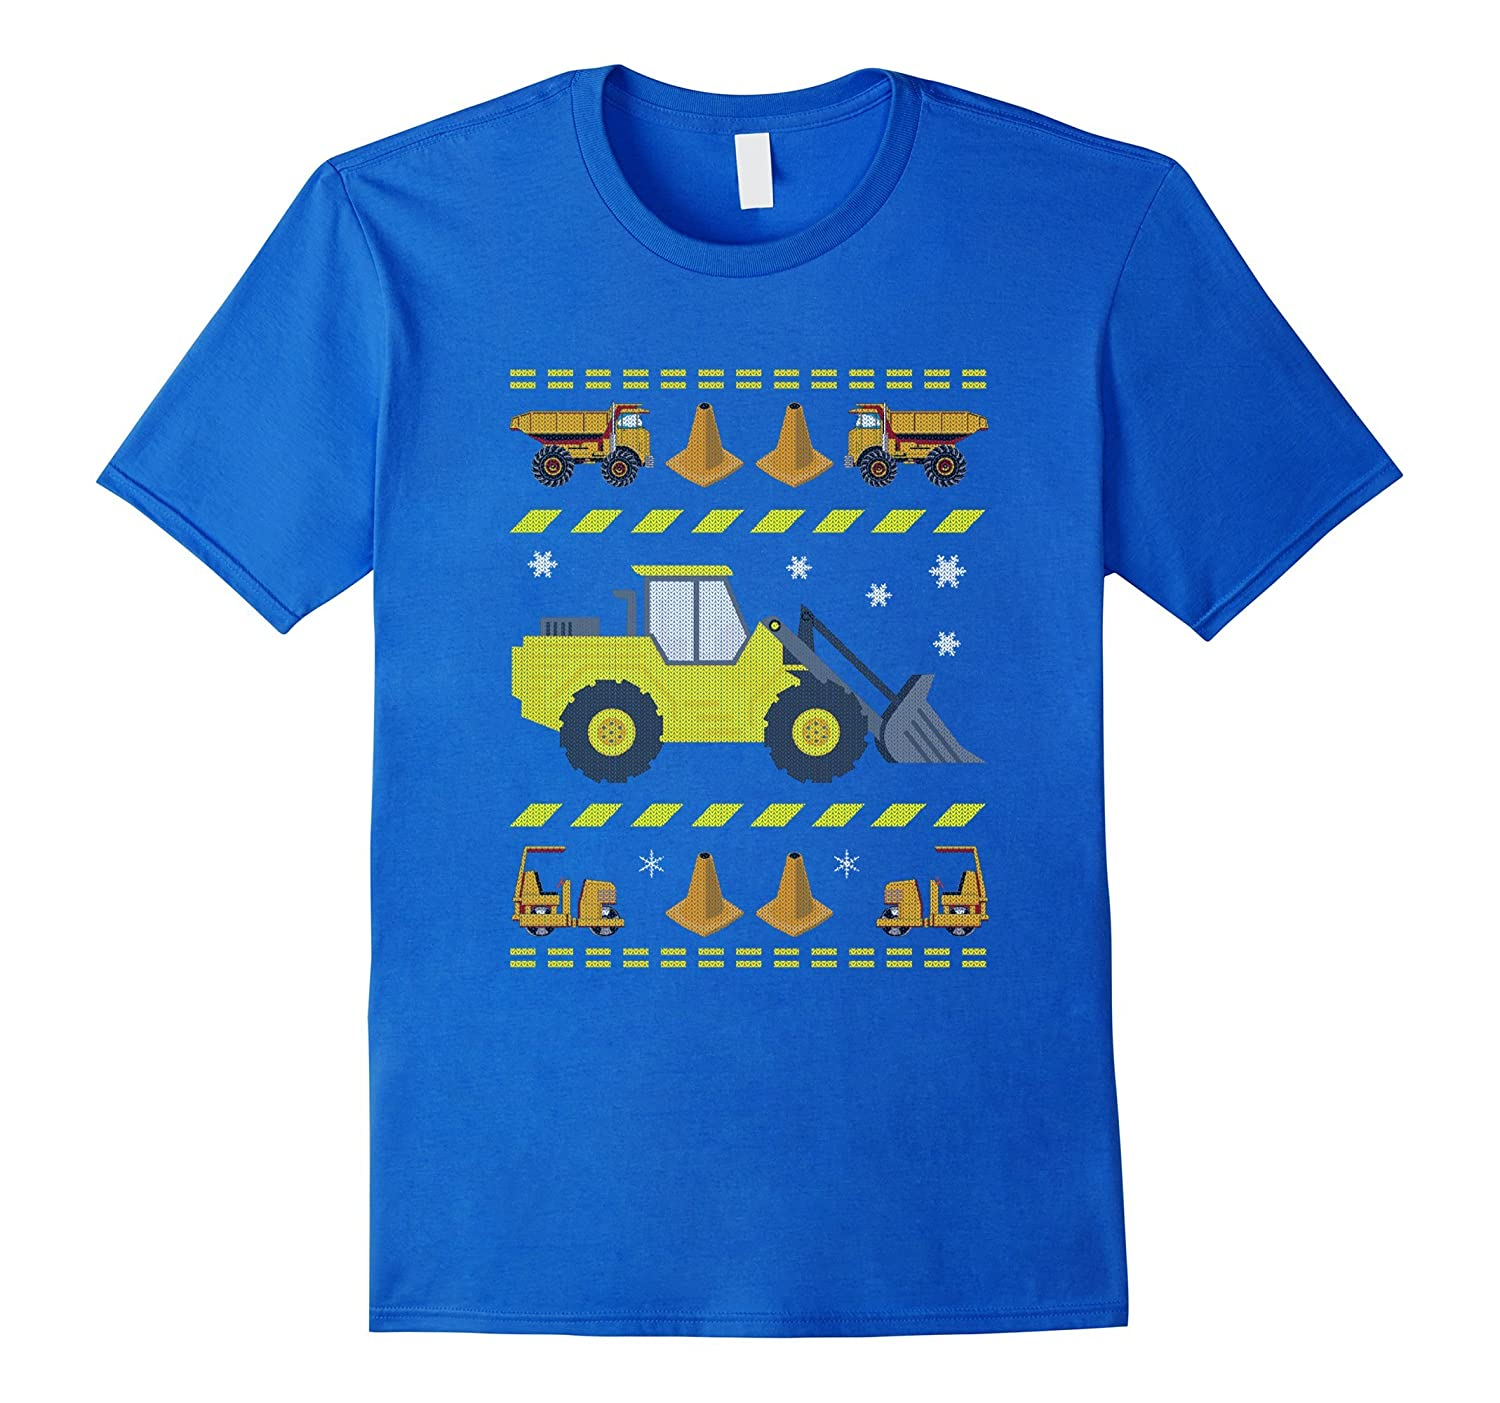 d0cad36ad0295b Kids Tractors & Bulldozers Ugly Christmas Sweater T-Shirt-BN ...